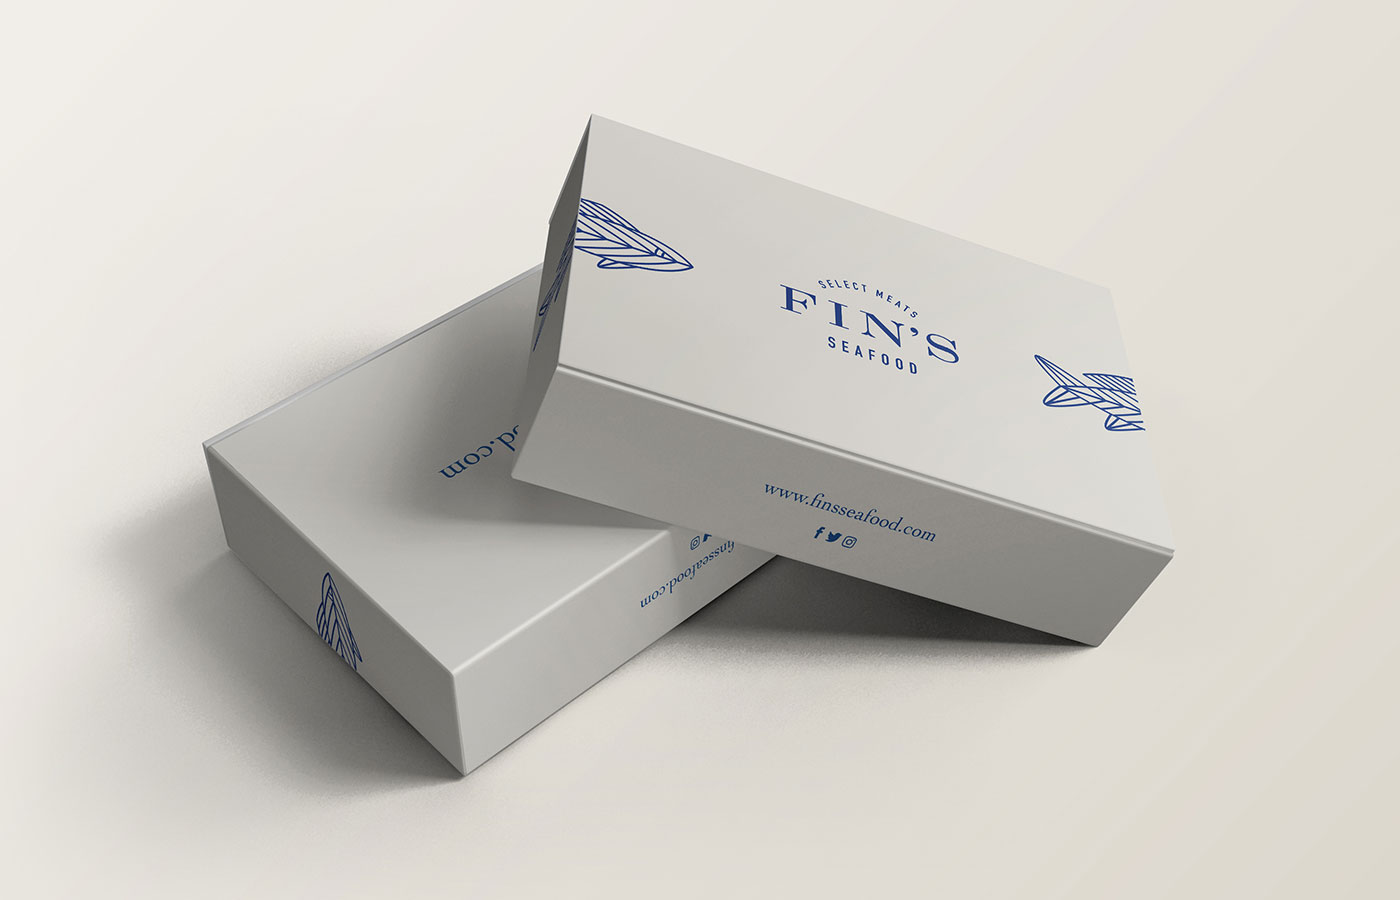 covetdesign_logo-design_branding_package-design_graphic-designer_vancouver_work_wide_fins-bboxes